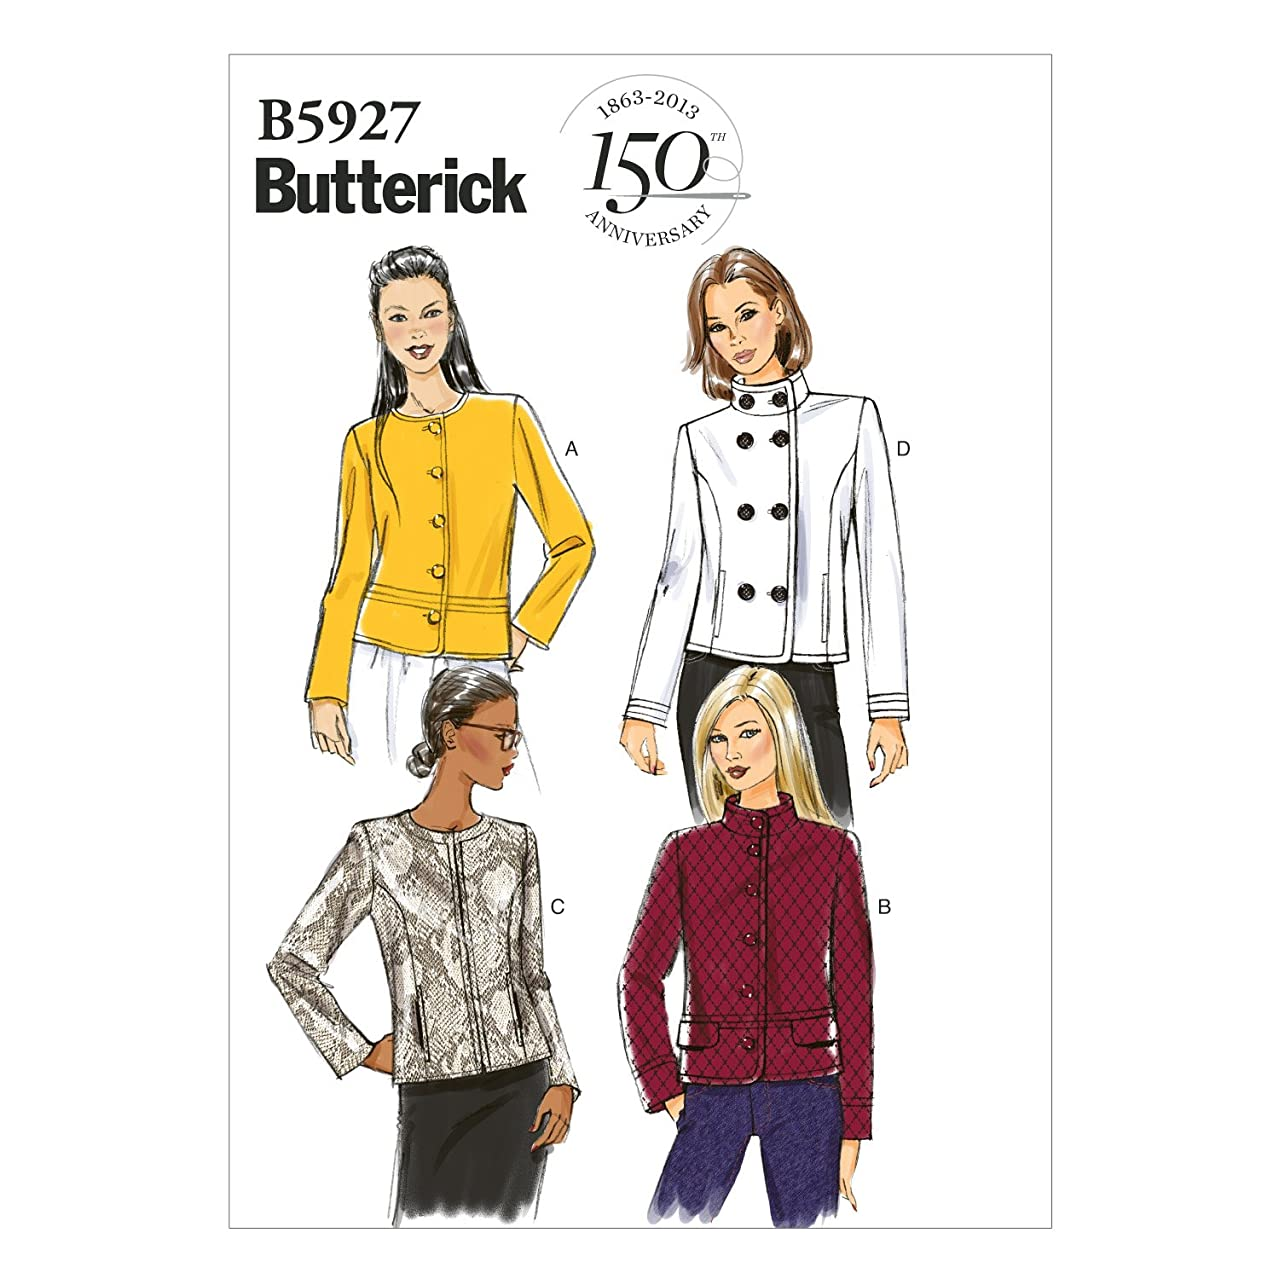 BUTTERICK PATTERNS B5927 Misses' Jacket Sewing Template, Size A5 (6-8-10-12-14)